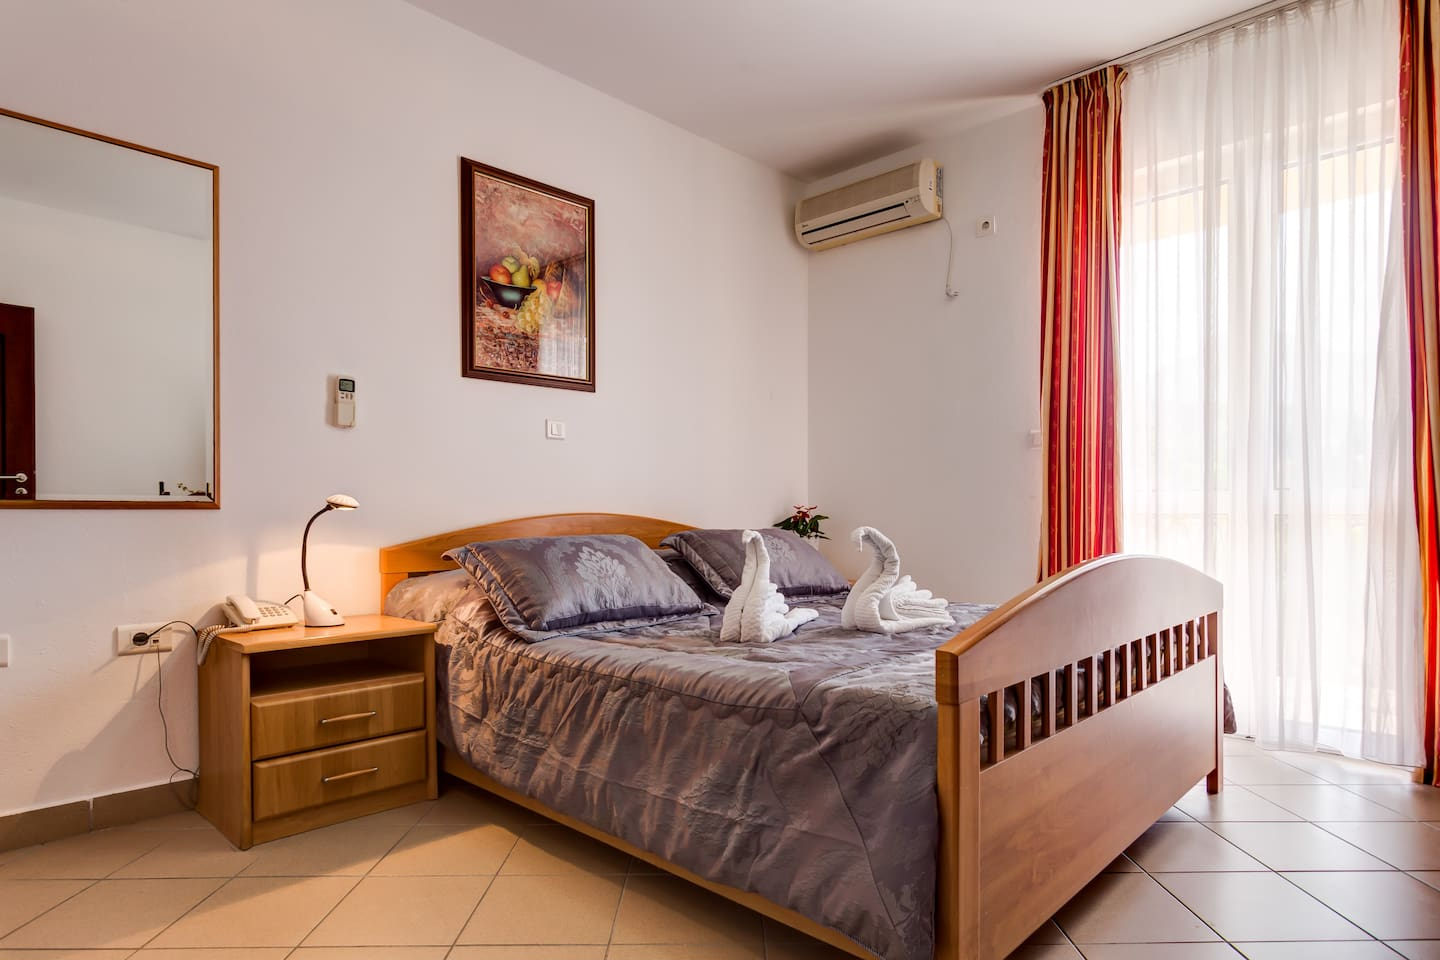 This studio apartment has a comfortable beds, TV with cable TV, wardrobe, air conditioning and Wi Fi internet connection.